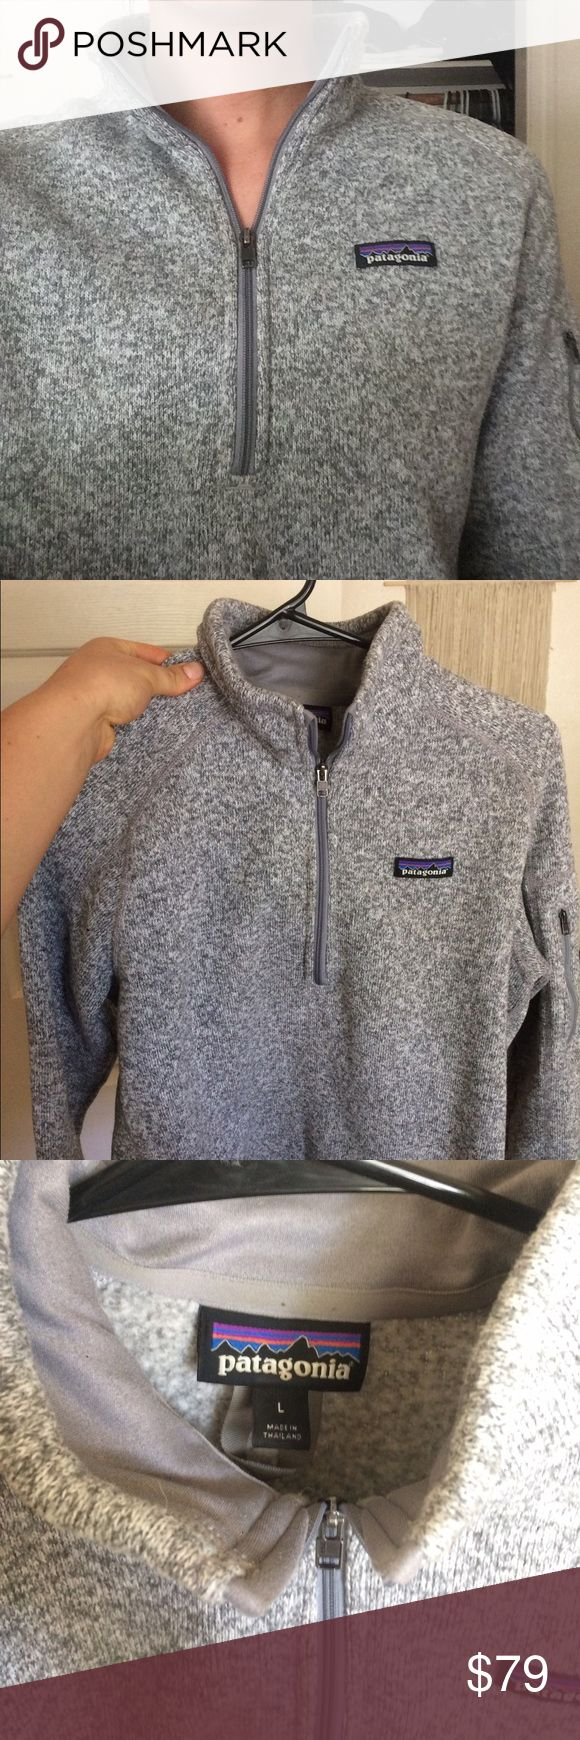 Patagonia Better Sweater Size L This sweater is awesome, barely worn, hardly any pilling Patagonia Jackets & Coats